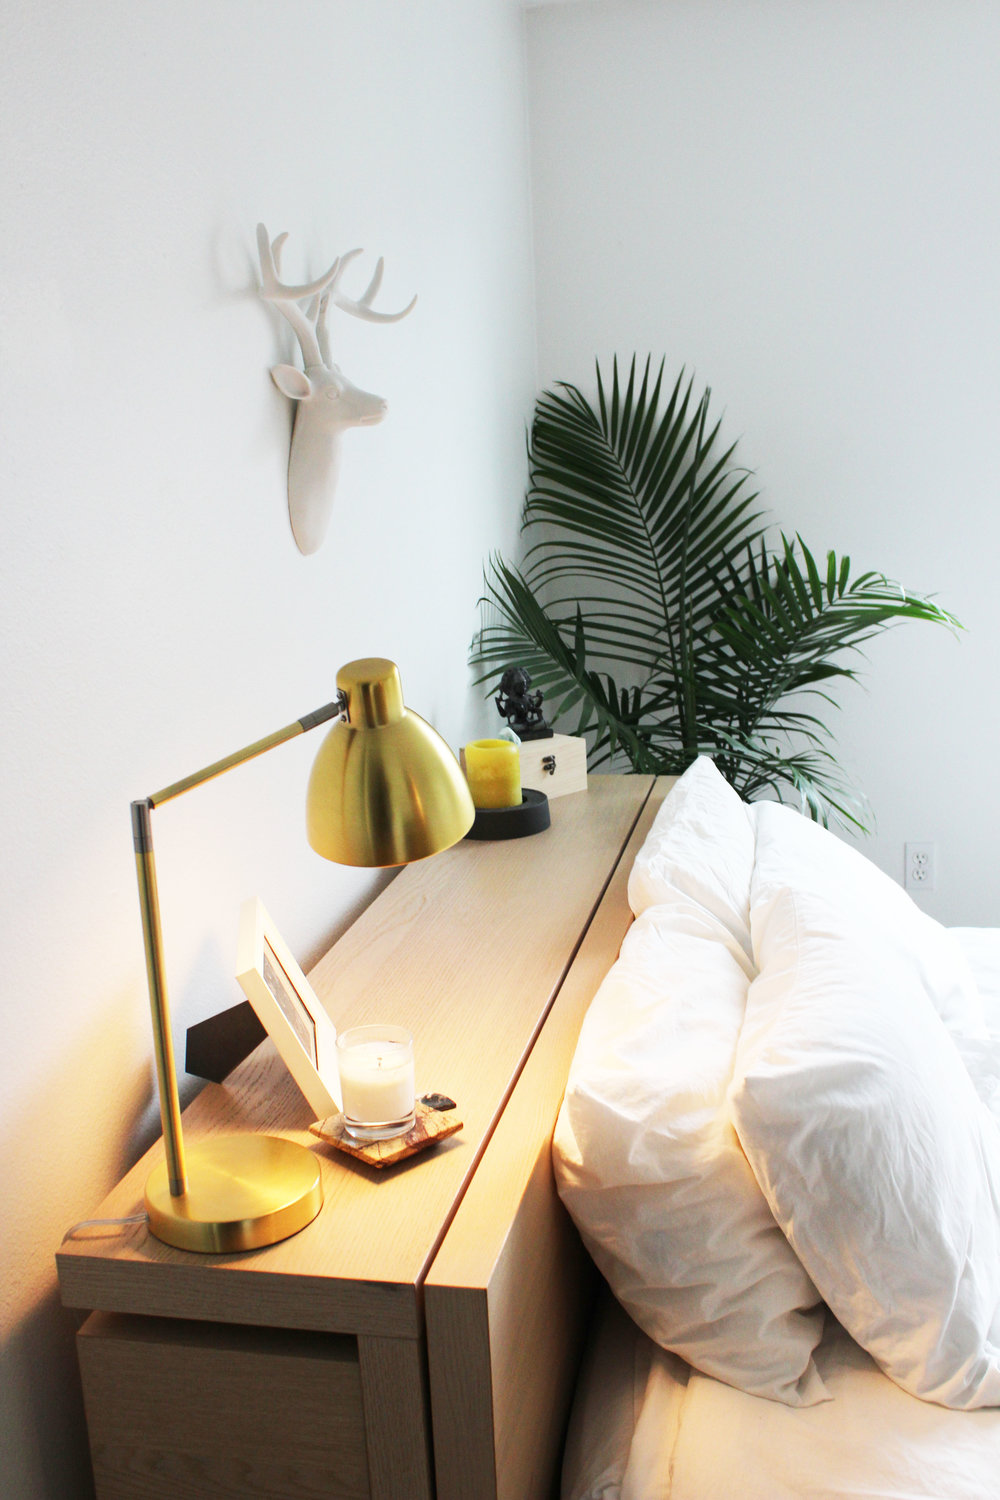 AFTER:  By simply adding a new lamp and a sculpture she had in the closet, the feeling of the bedroom is transformed. Meaningful and inspiring objects now greet Melissa in the morning, setting the tone for her day.